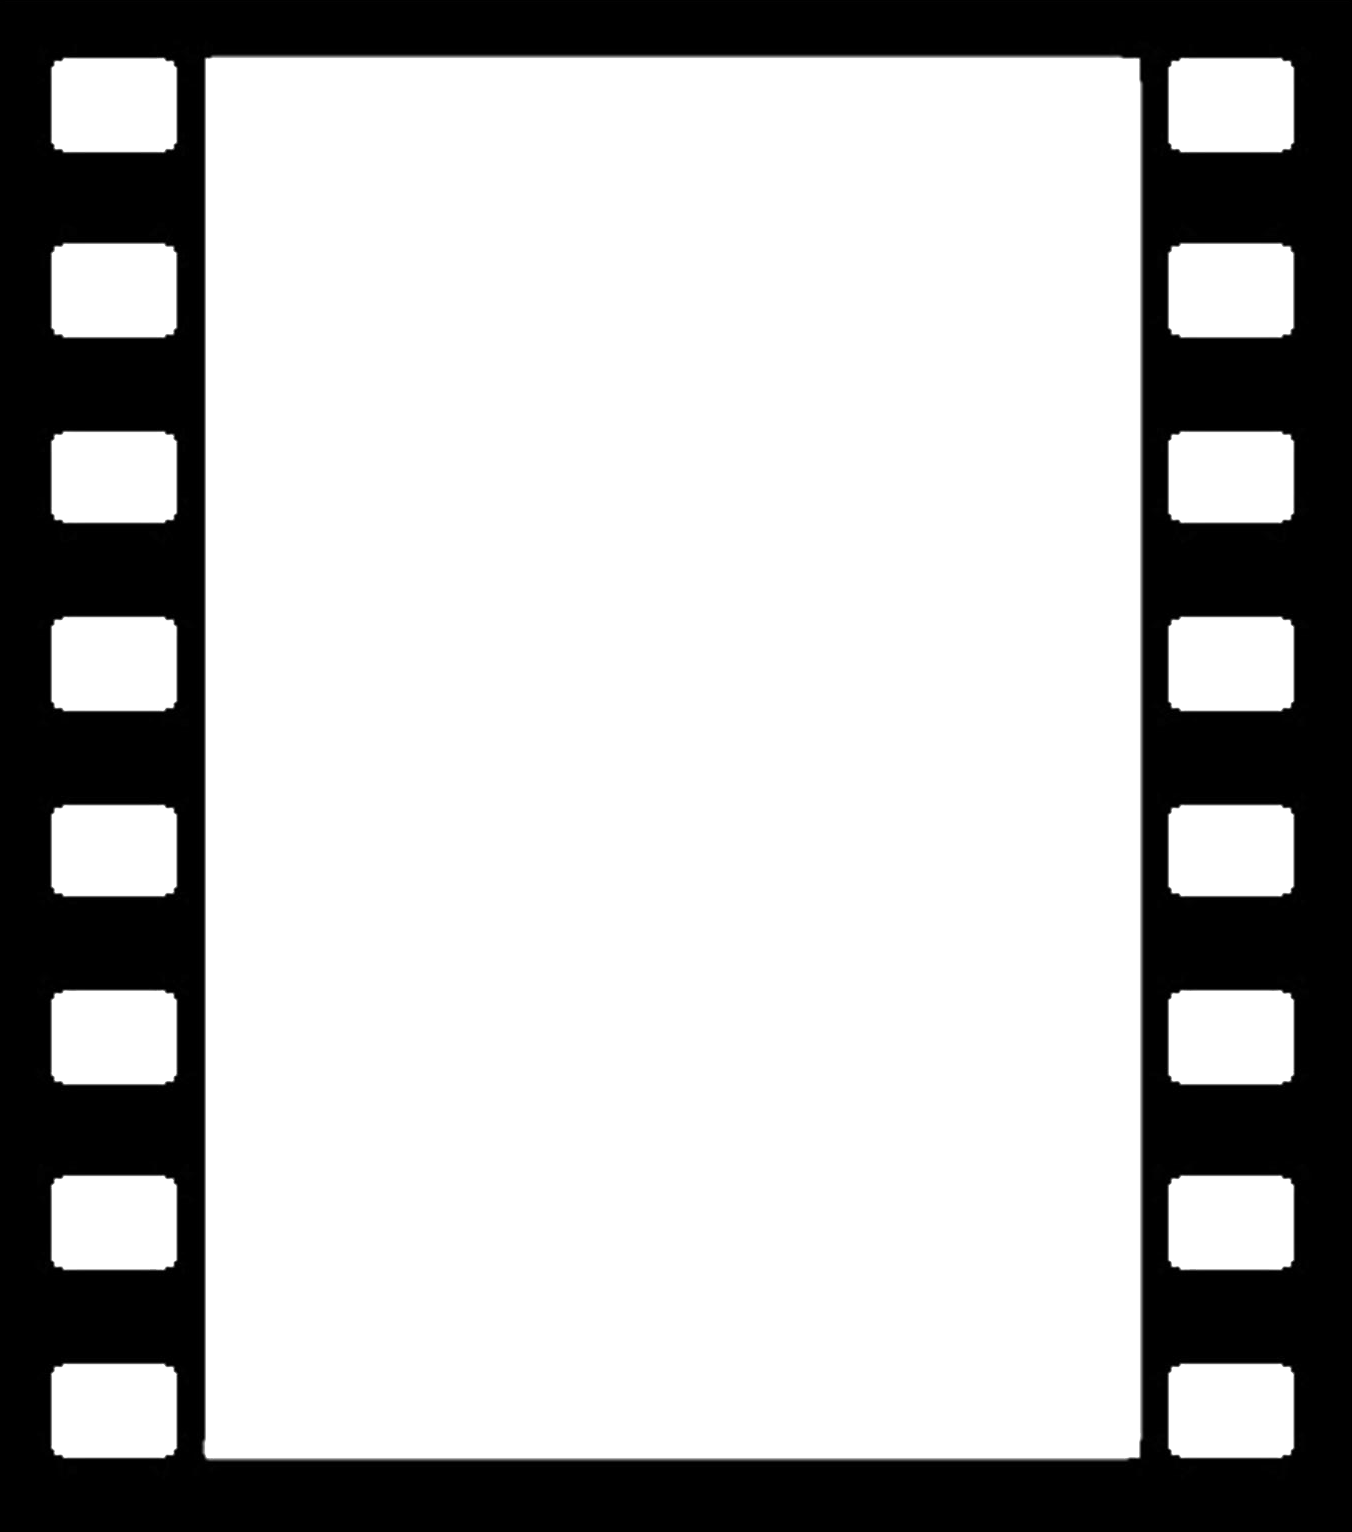 Movie Film Strip Clipart.